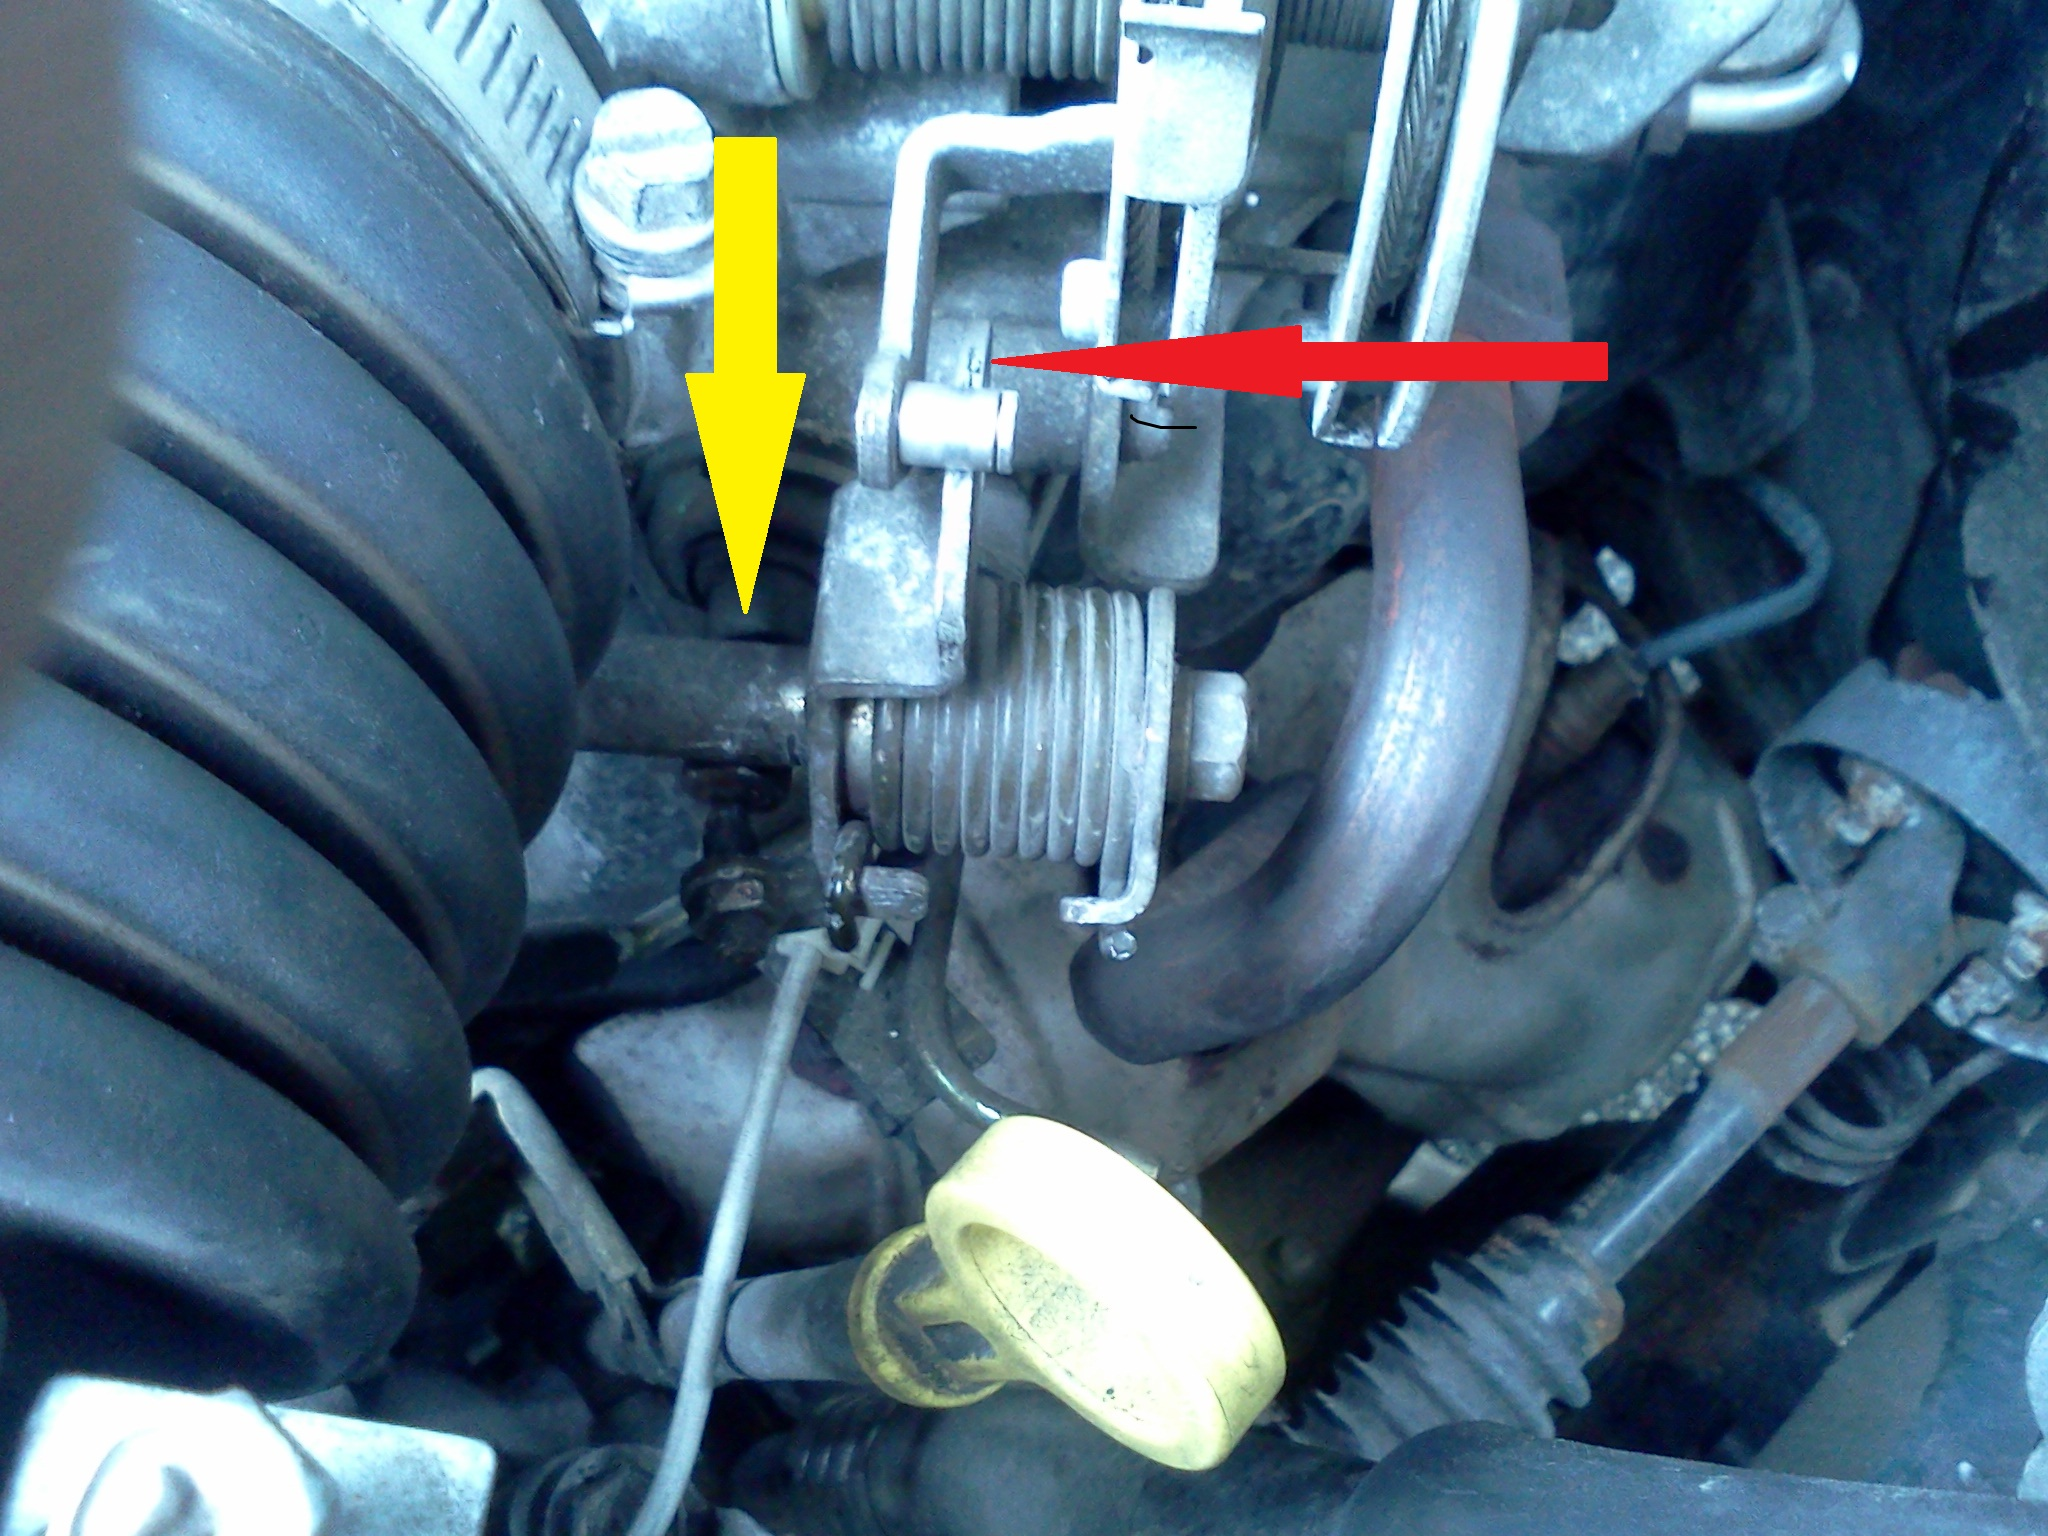 32247d1307229265 idle screwed up after replacing knock sensor frontier idle issue idle screwed up after replacing knock sensor nissan frontier forum 2003 nissan xterra knock sensor wiring harness at bayanpartner.co